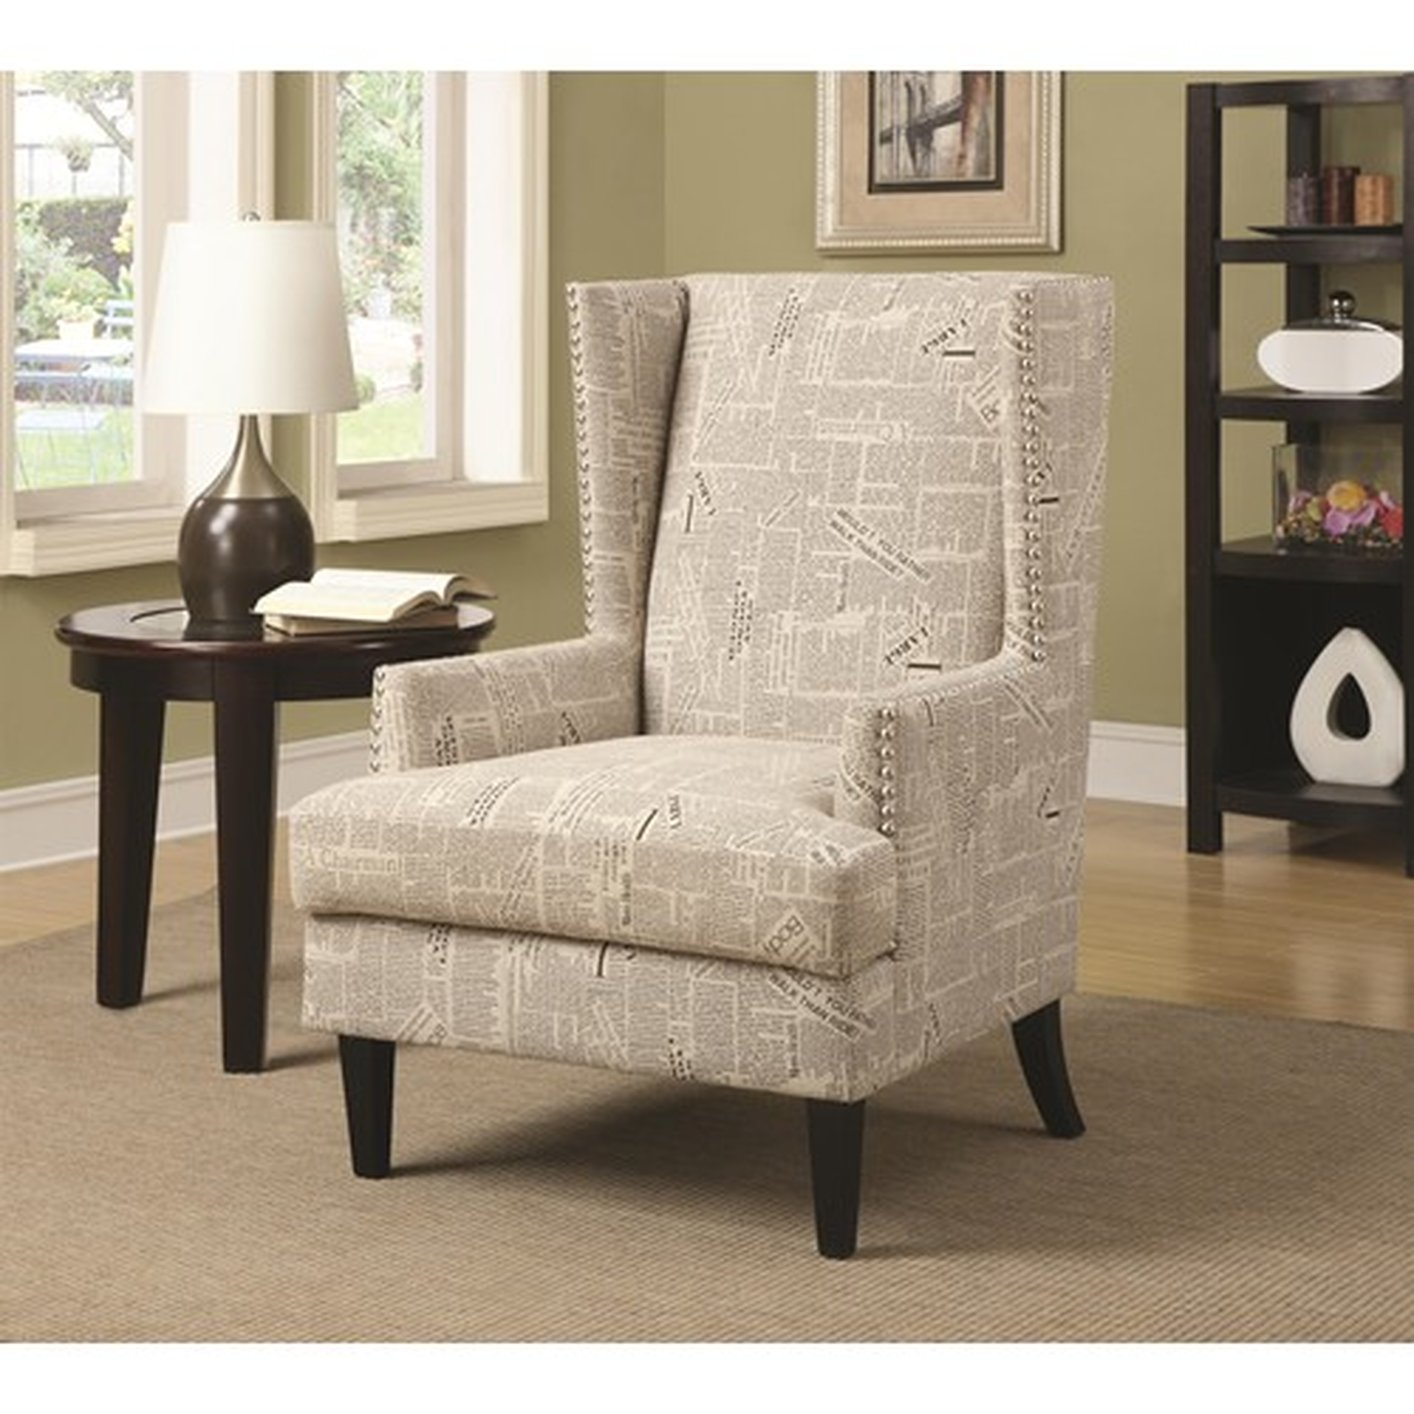 Coaster 902180 beige fabric accent chair steal a sofa for Furniture 90036